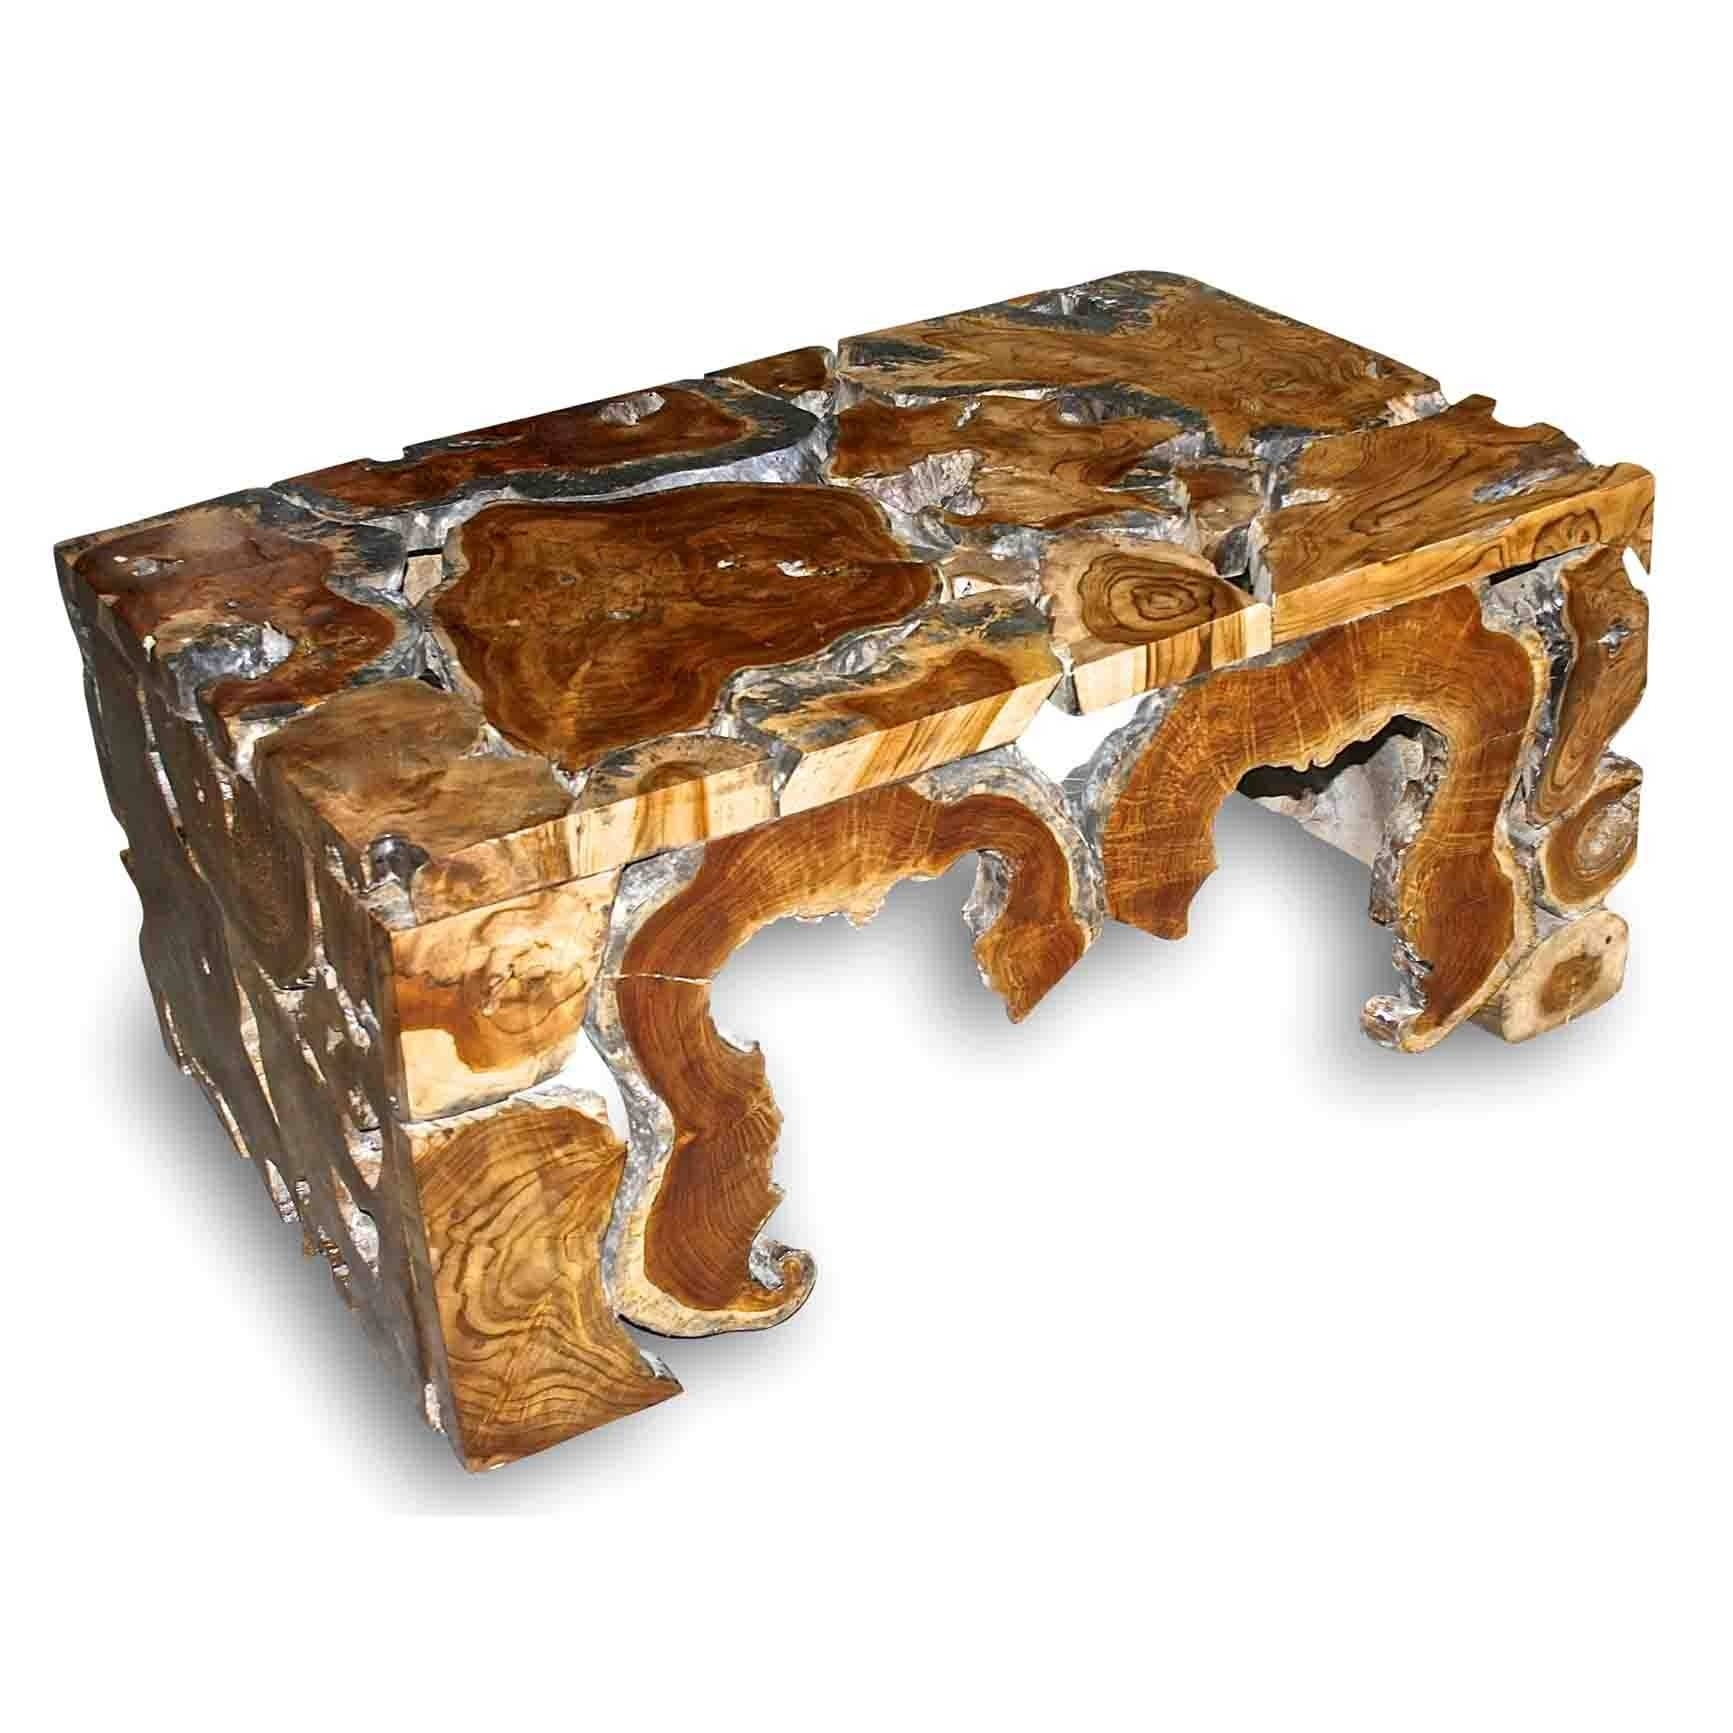 15 Best Collection of Natural Wood Coffee Tables